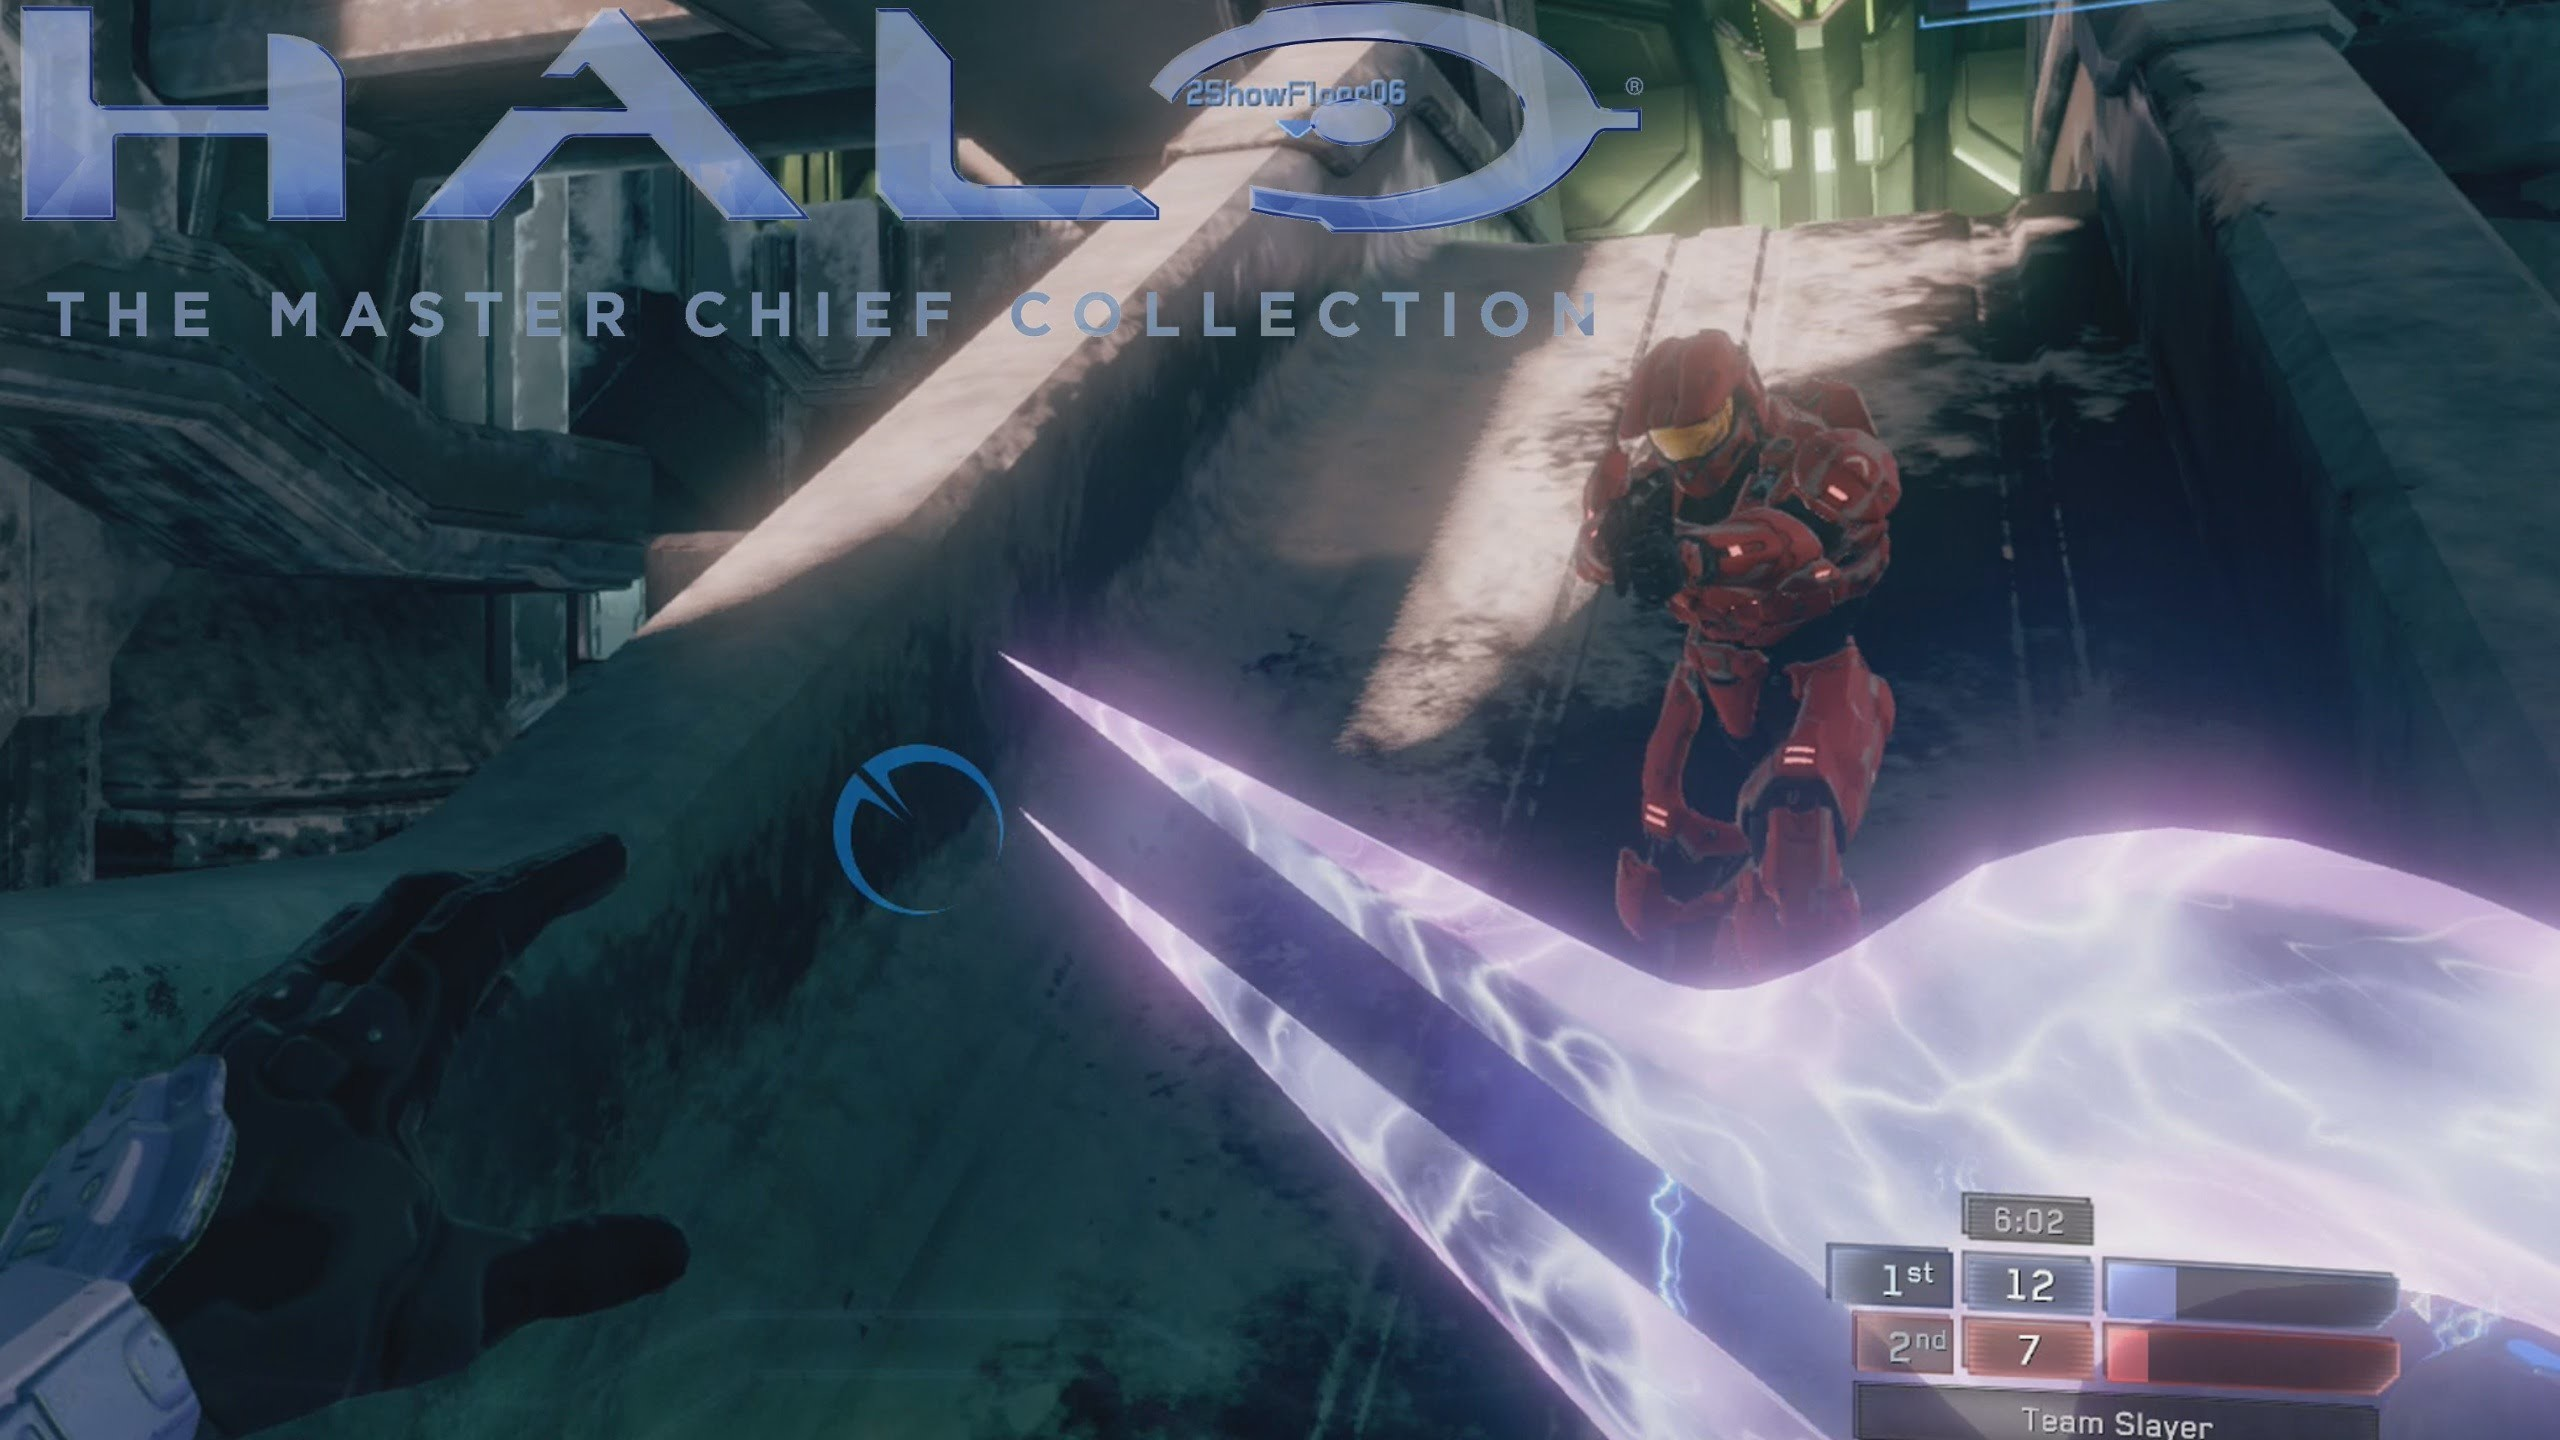 HALO Master Chief Collection GAMEPLAY – HALO 2 Anniversary Multiplayer  Gameplay 1080p! – YouTube